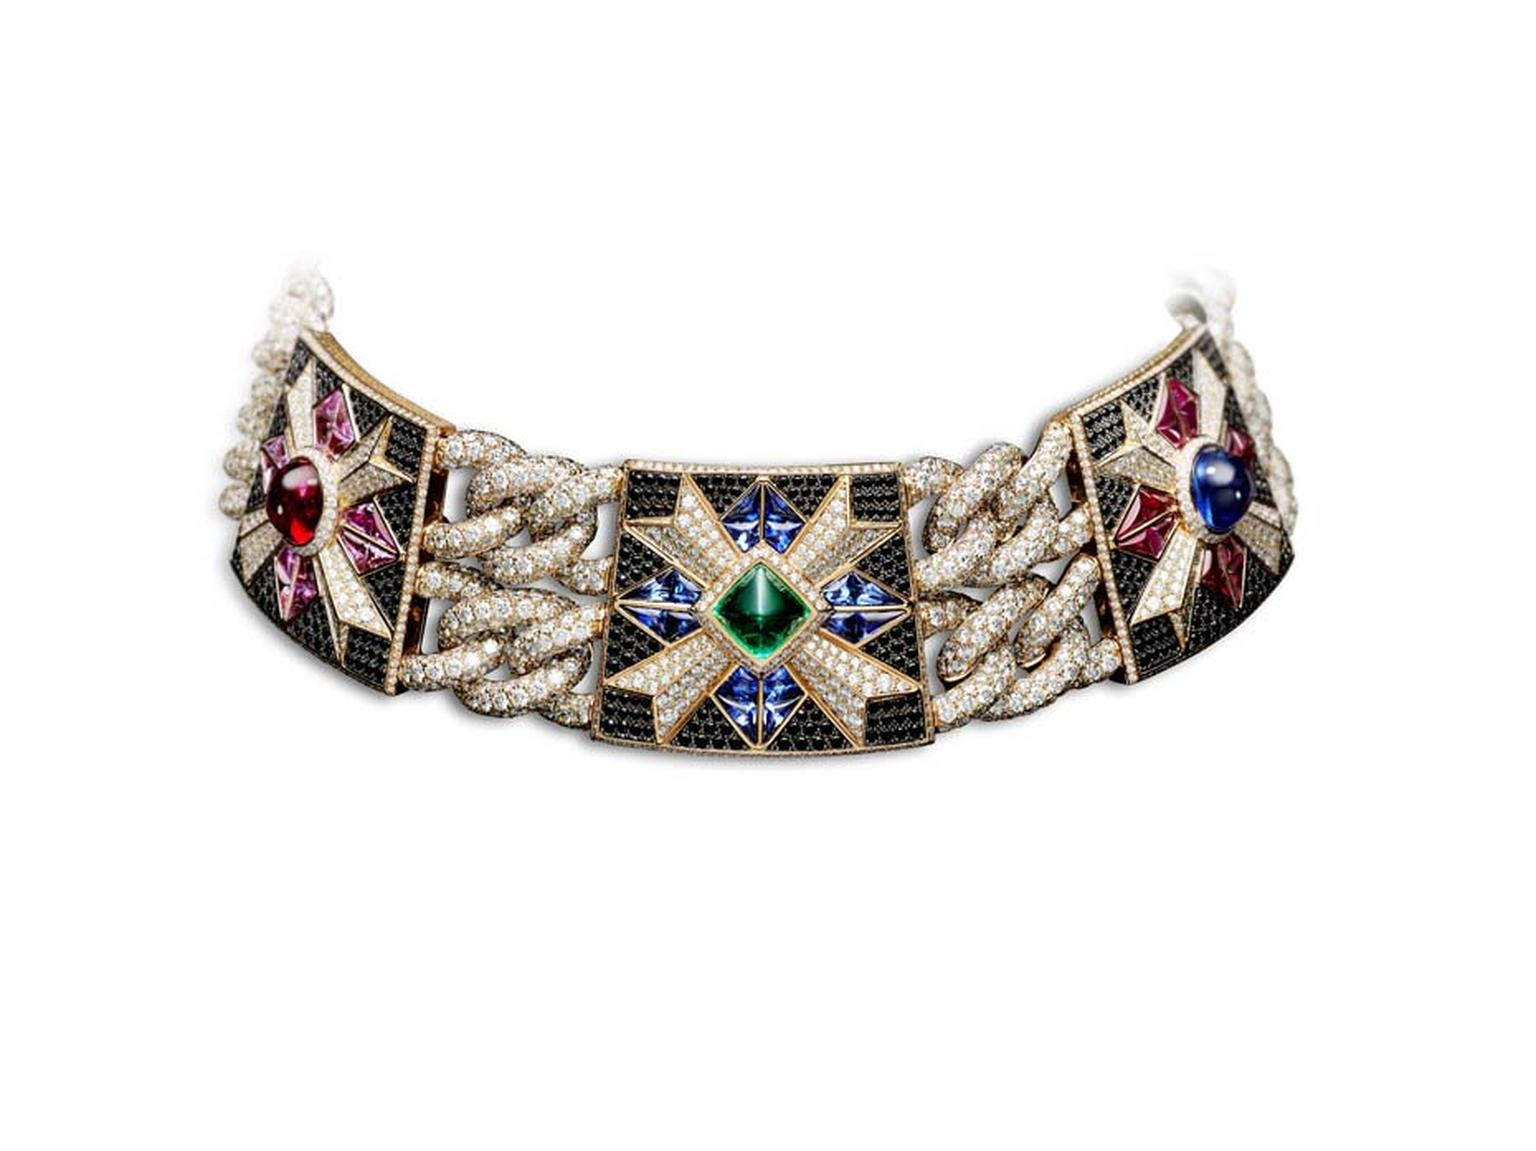 Giampiero Bodino Rosa dei Venti choker with a diamond-encrusted chain featuring coloured gemstones. Image: Laziz Hamani.